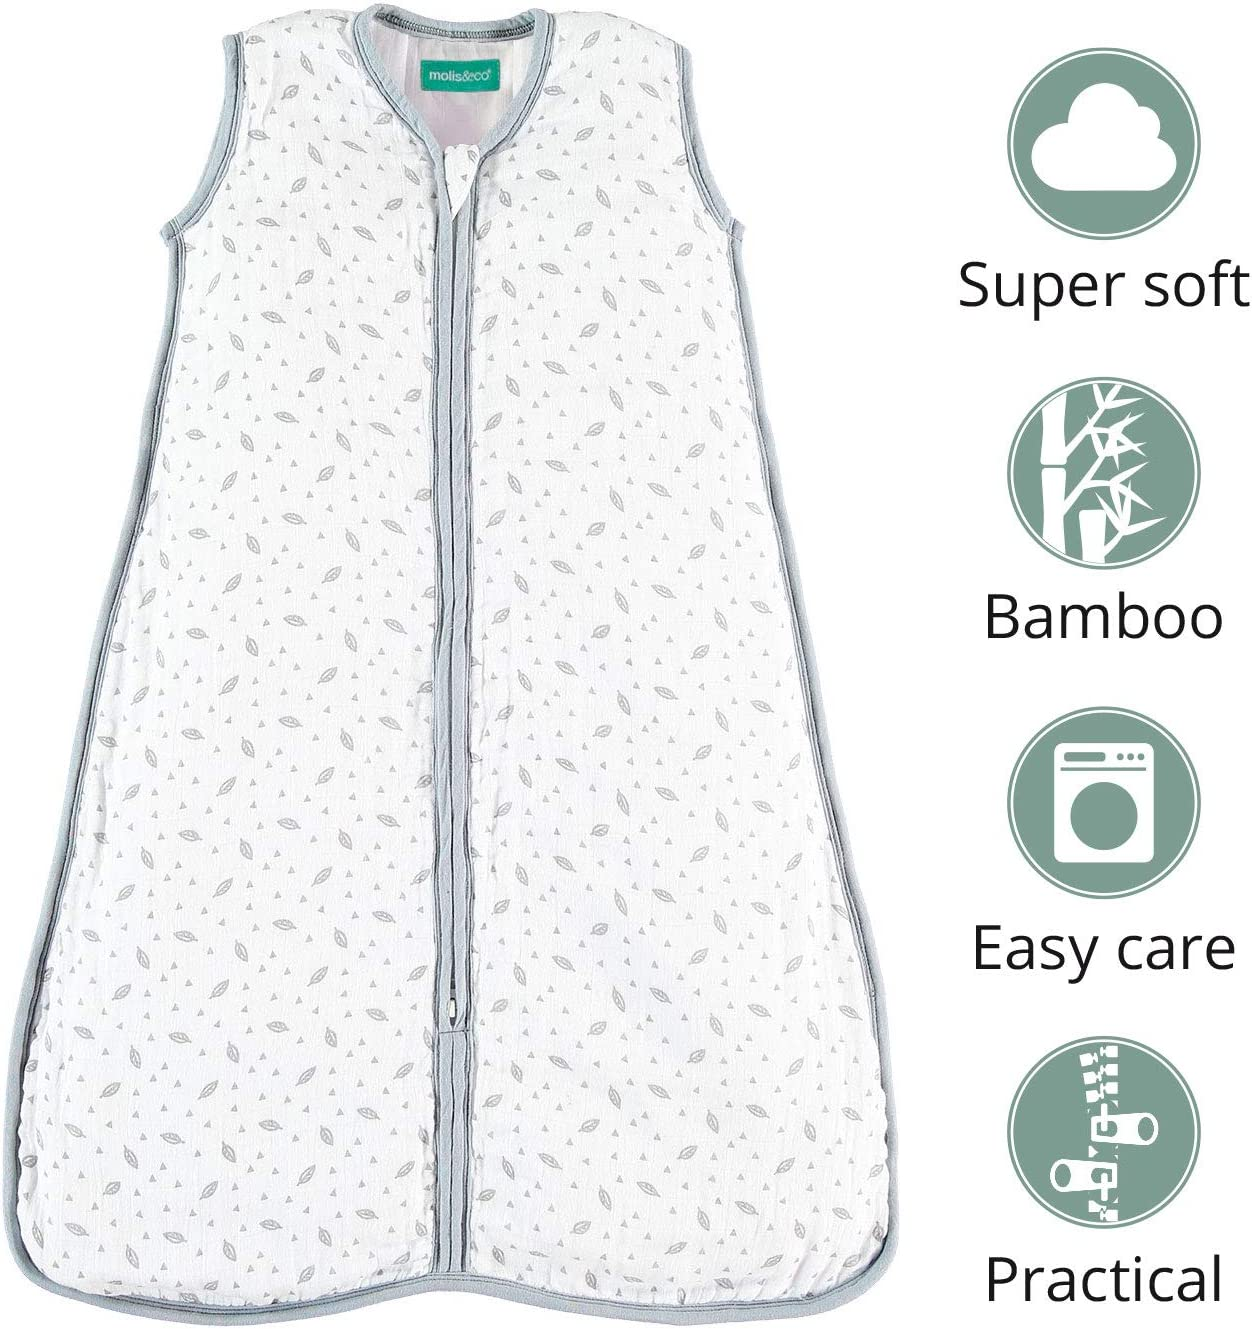 Unisex Kiwi Print 1.0 TOG Lightly Padded Baby Sleeping Bag molis/&co Super Soft and Warm Premium Muslin Grow Bag for Babies. 18-36 Months